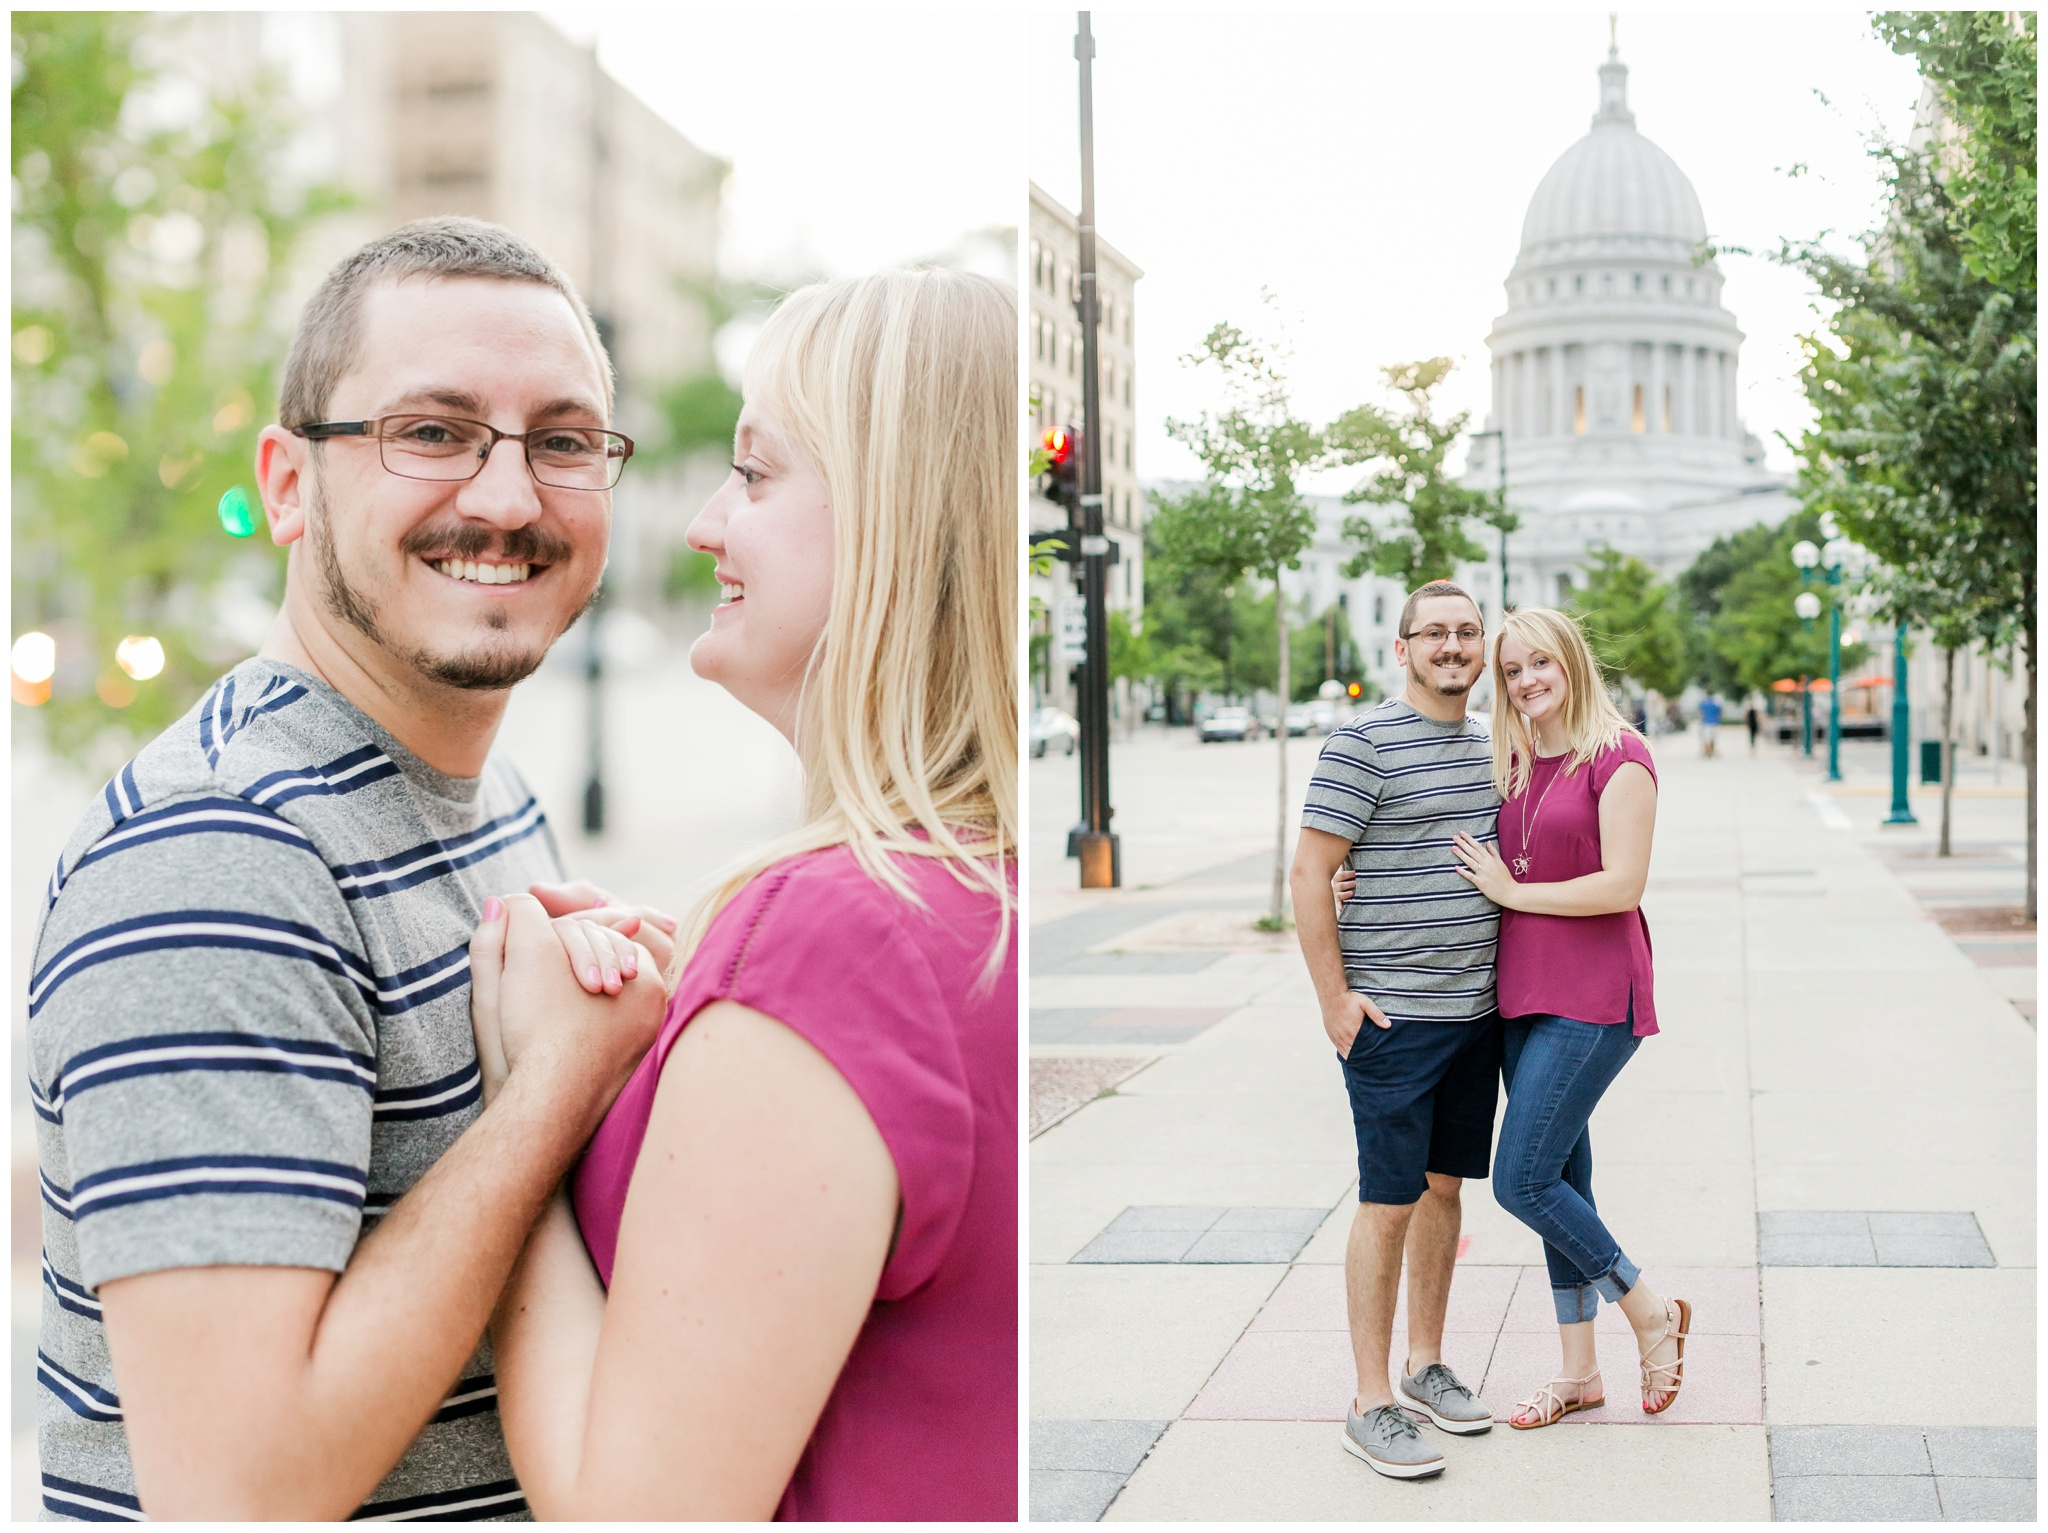 Downtown_madison_wisconsin_engagement_session_4226.jpg